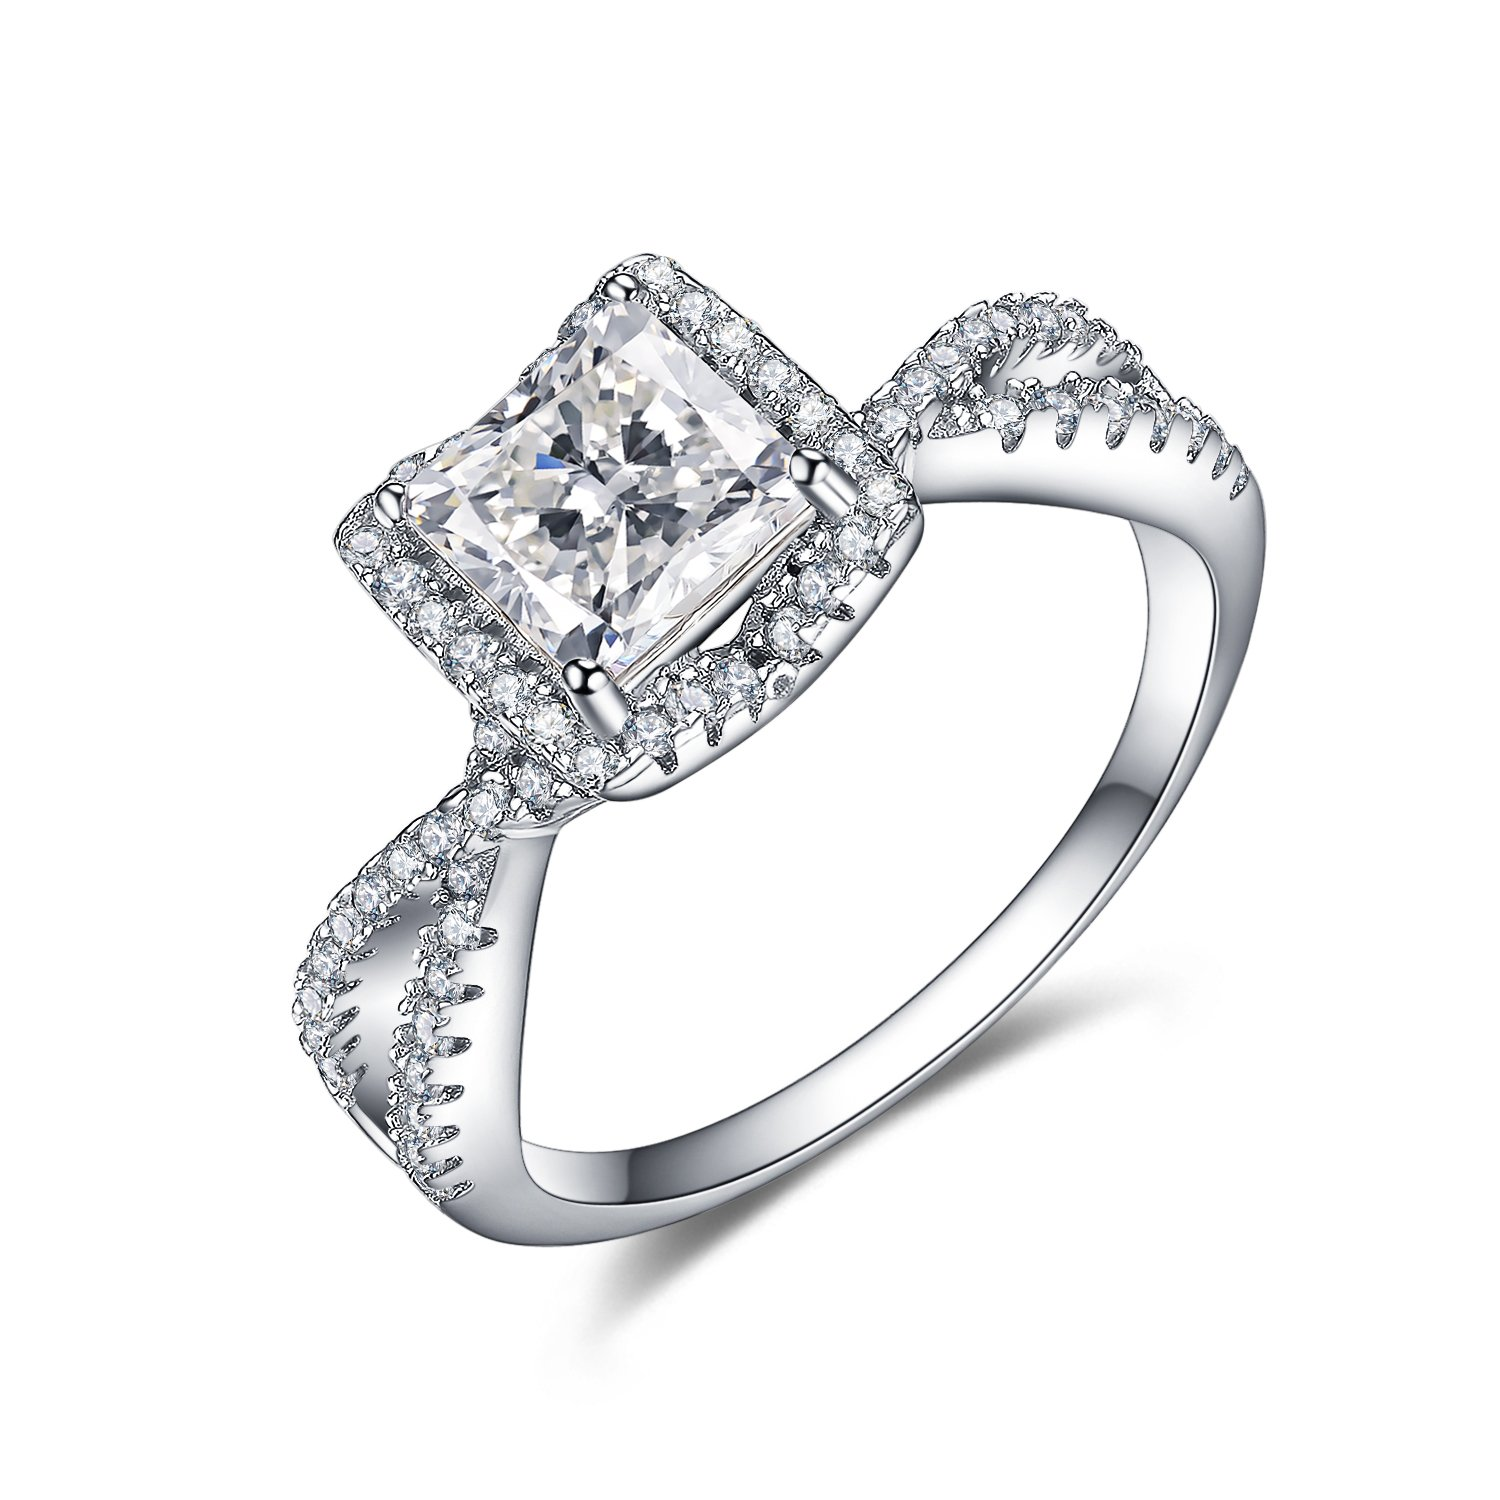 UMODE Vintage Silver 1.25ct Princess Cut Cubic Zirconia Engagement Wedding Ring (8) by UMODE (Image #1)